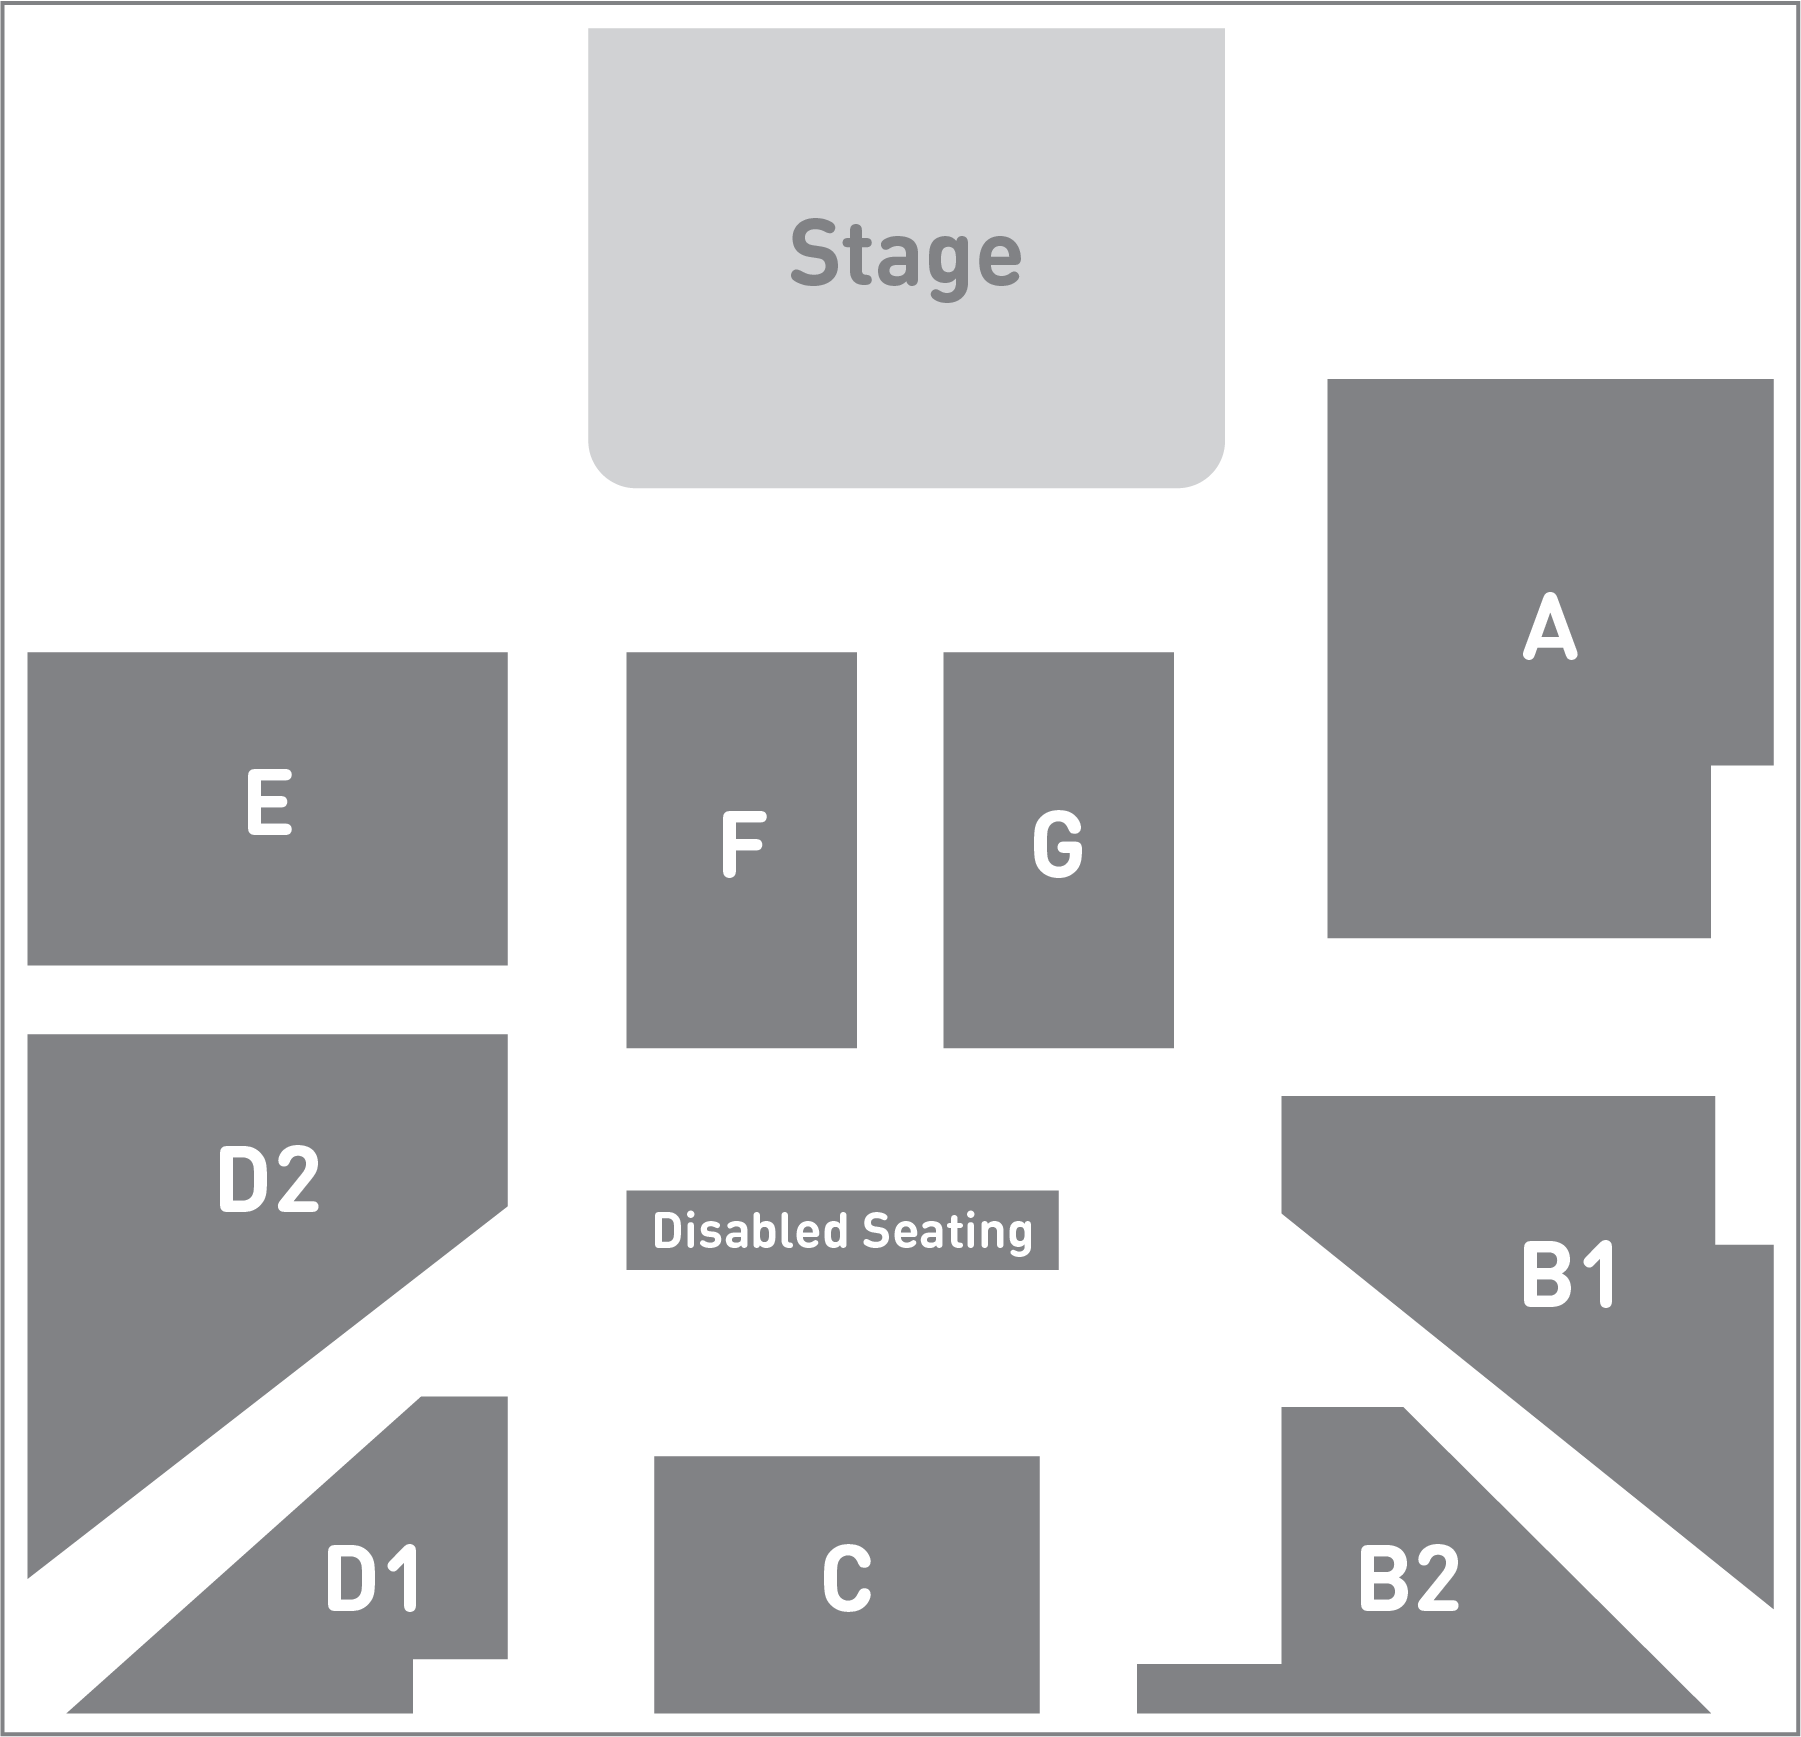 Section plan of auditorium